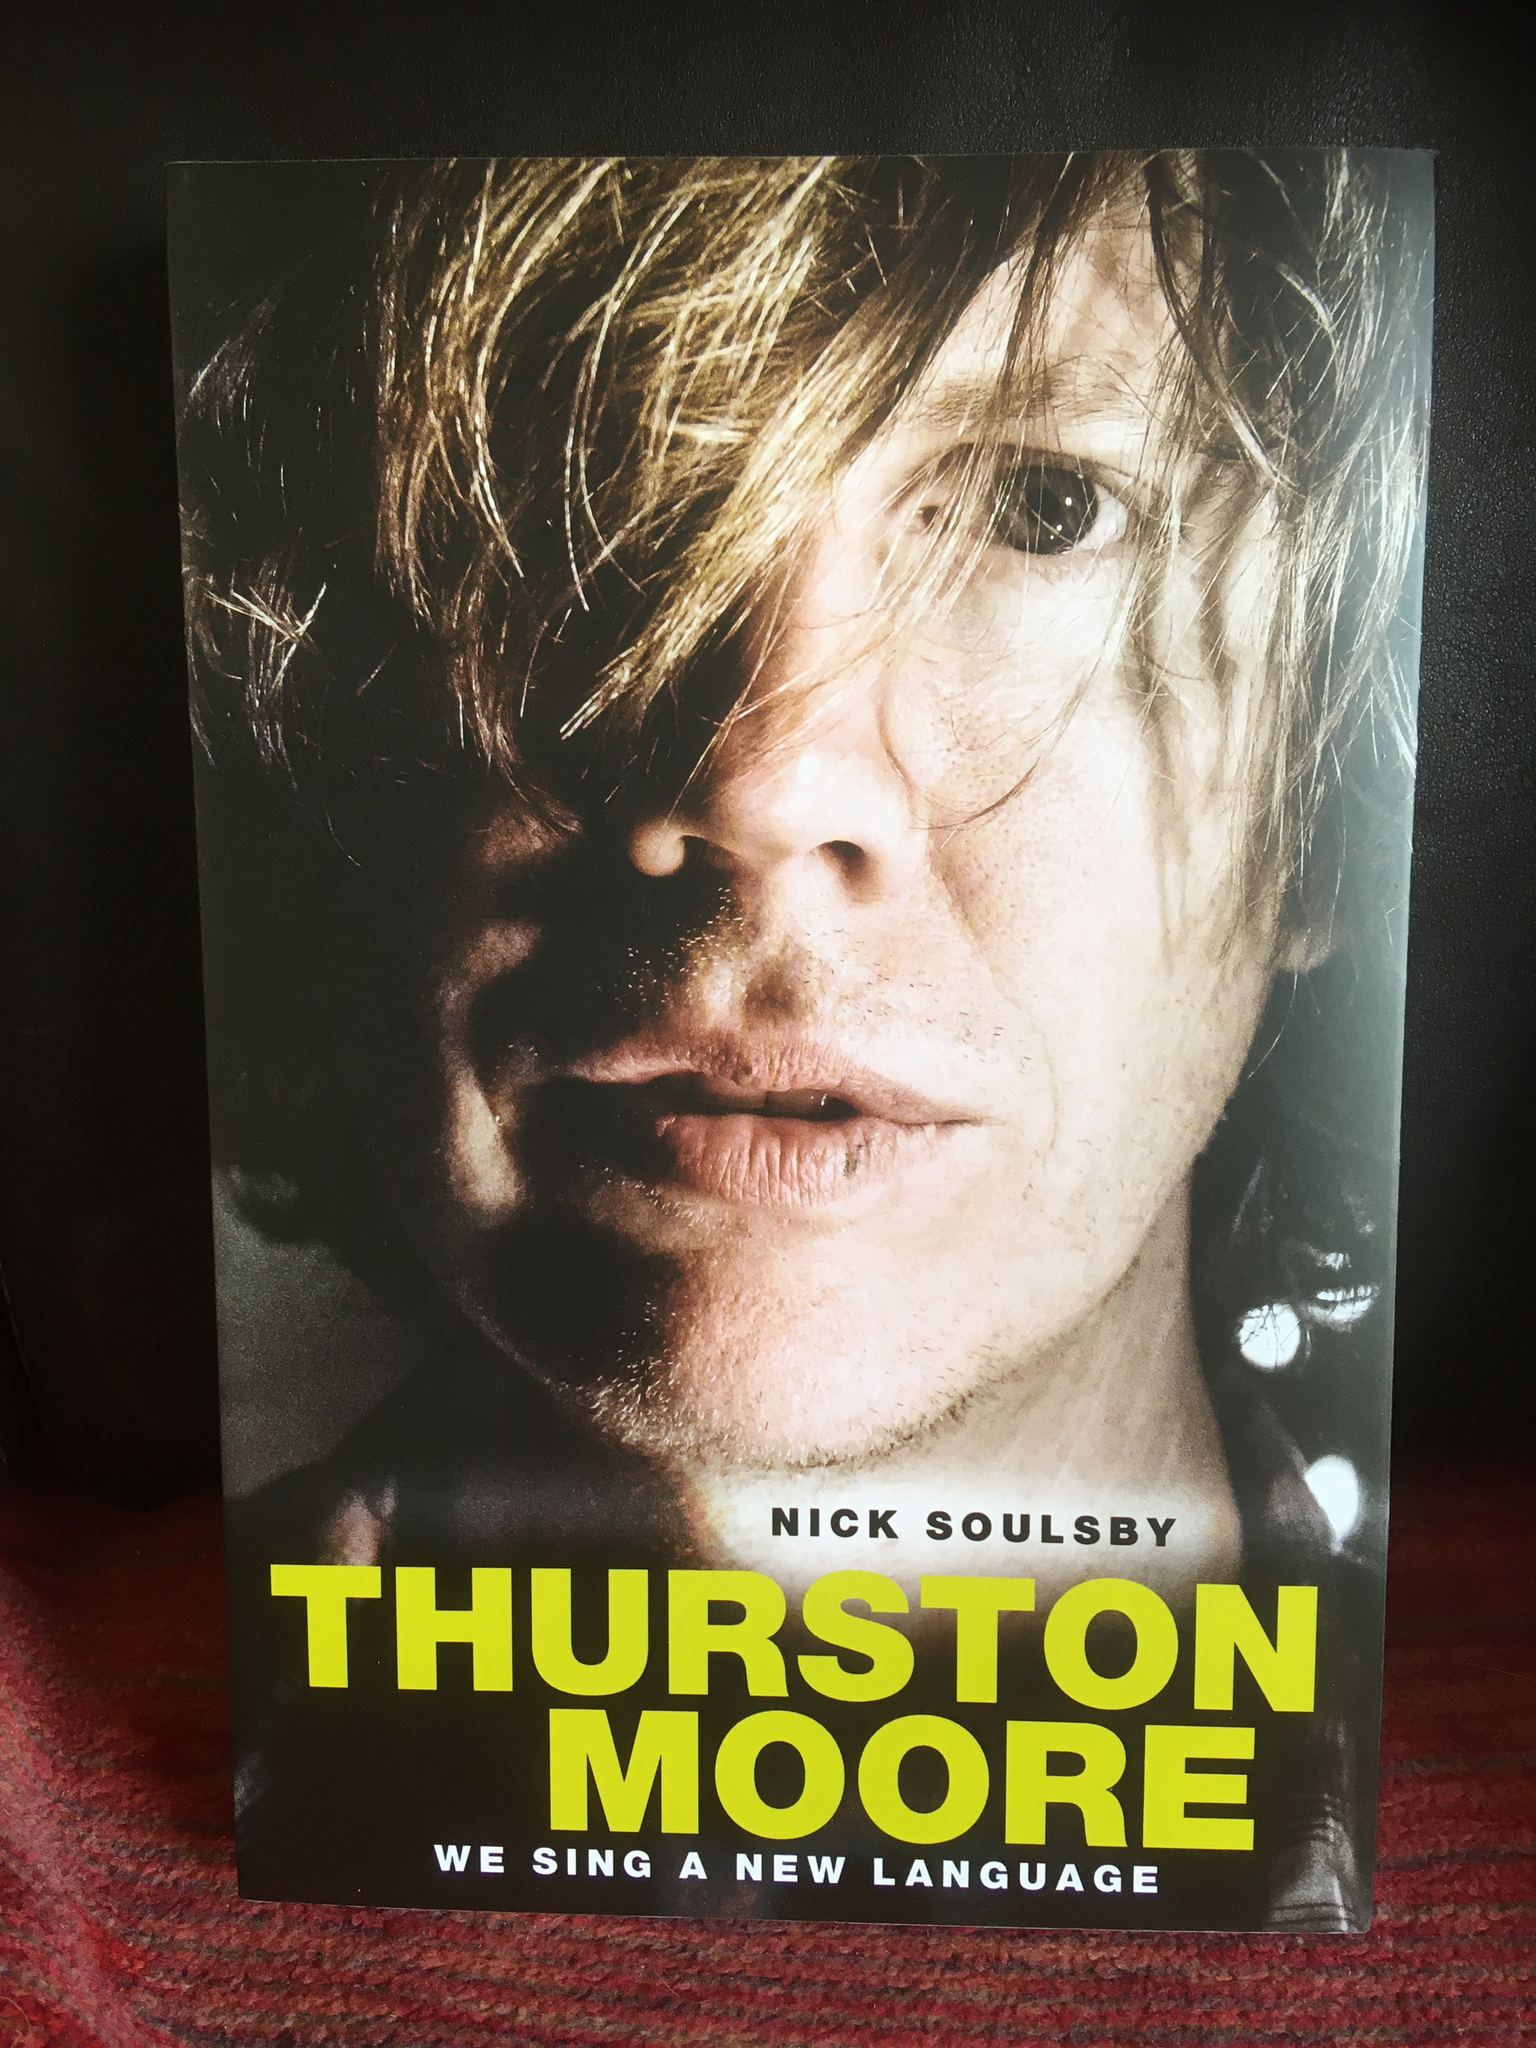 Thurston Moore - We Sing A New Language Paperback by Nick Soulsby